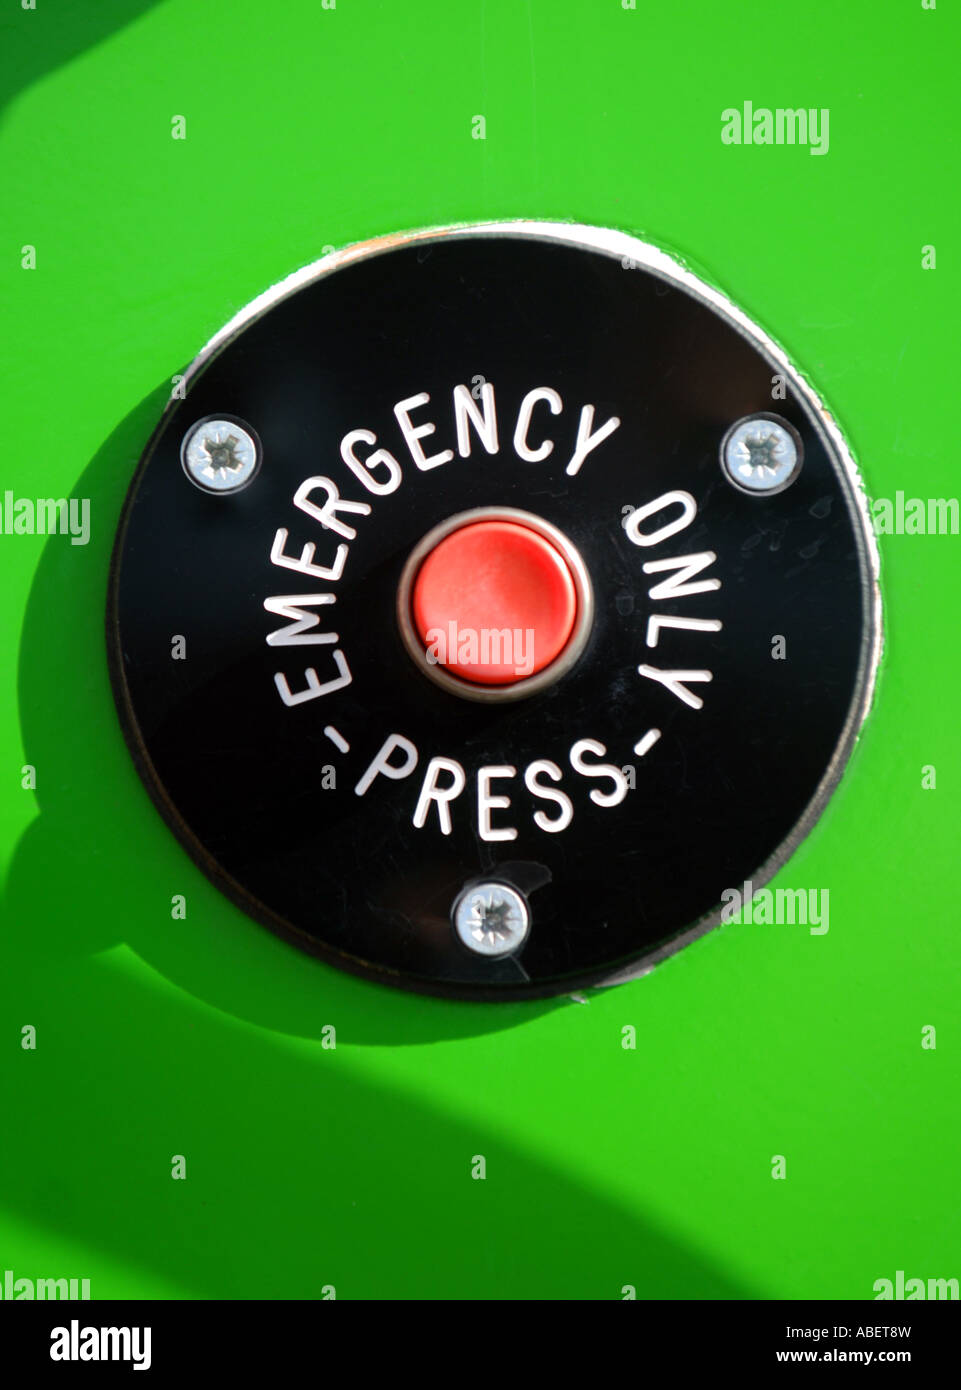 Emergency button - Stock Image